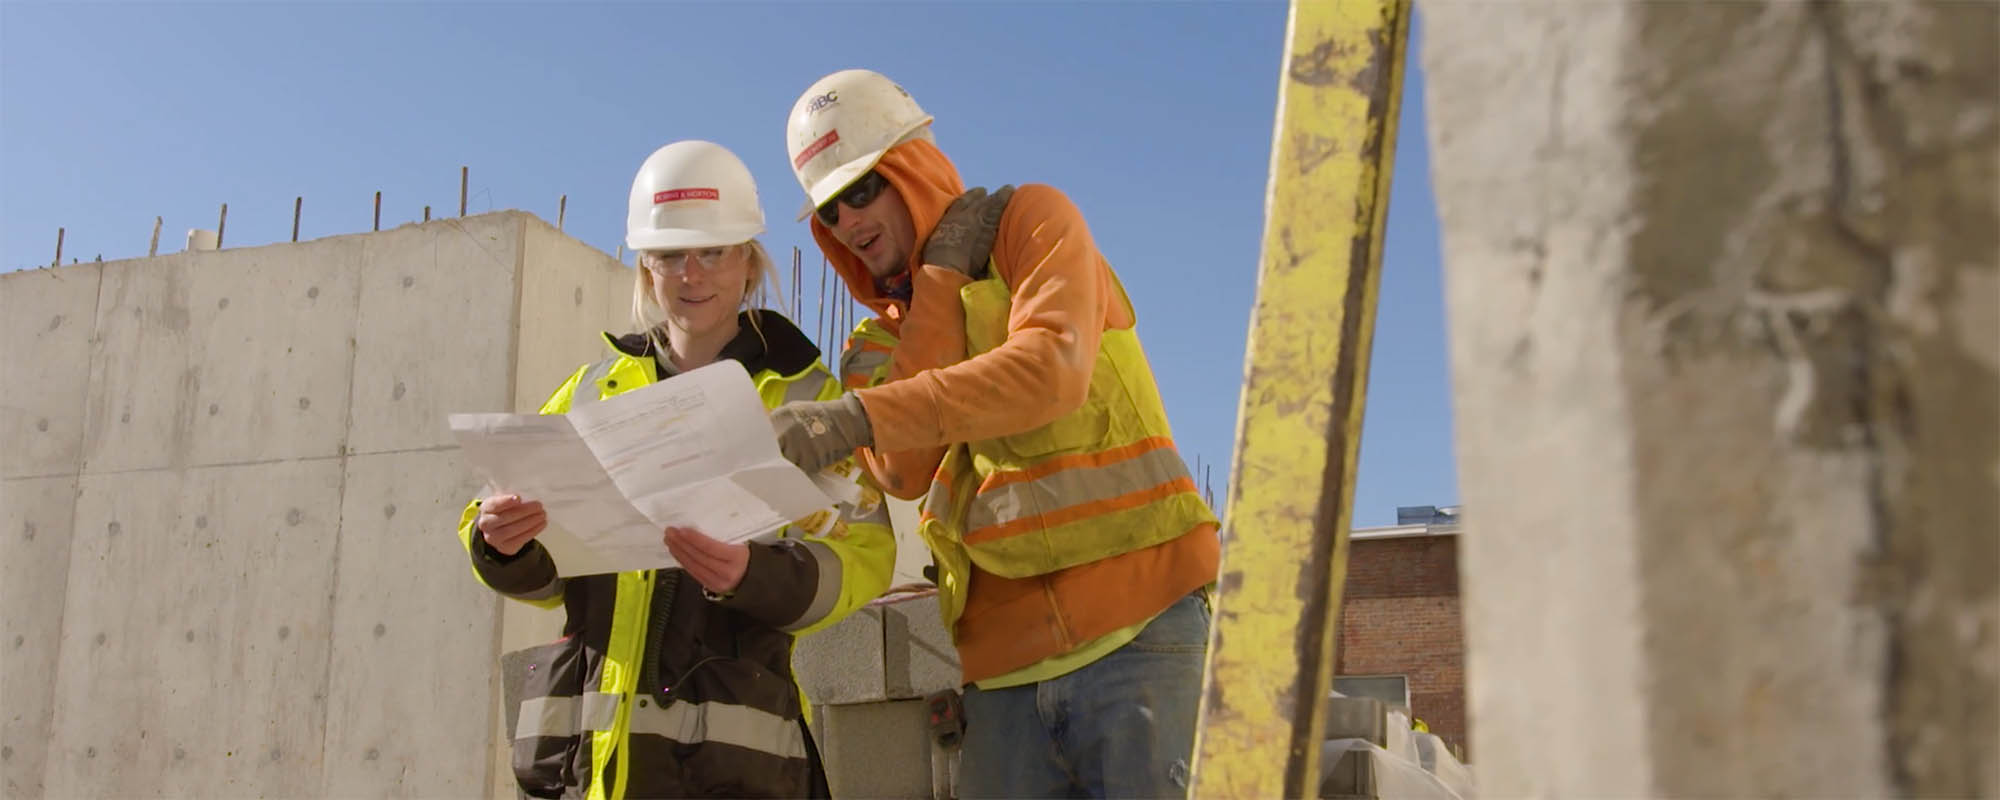 construction workers reading drawings